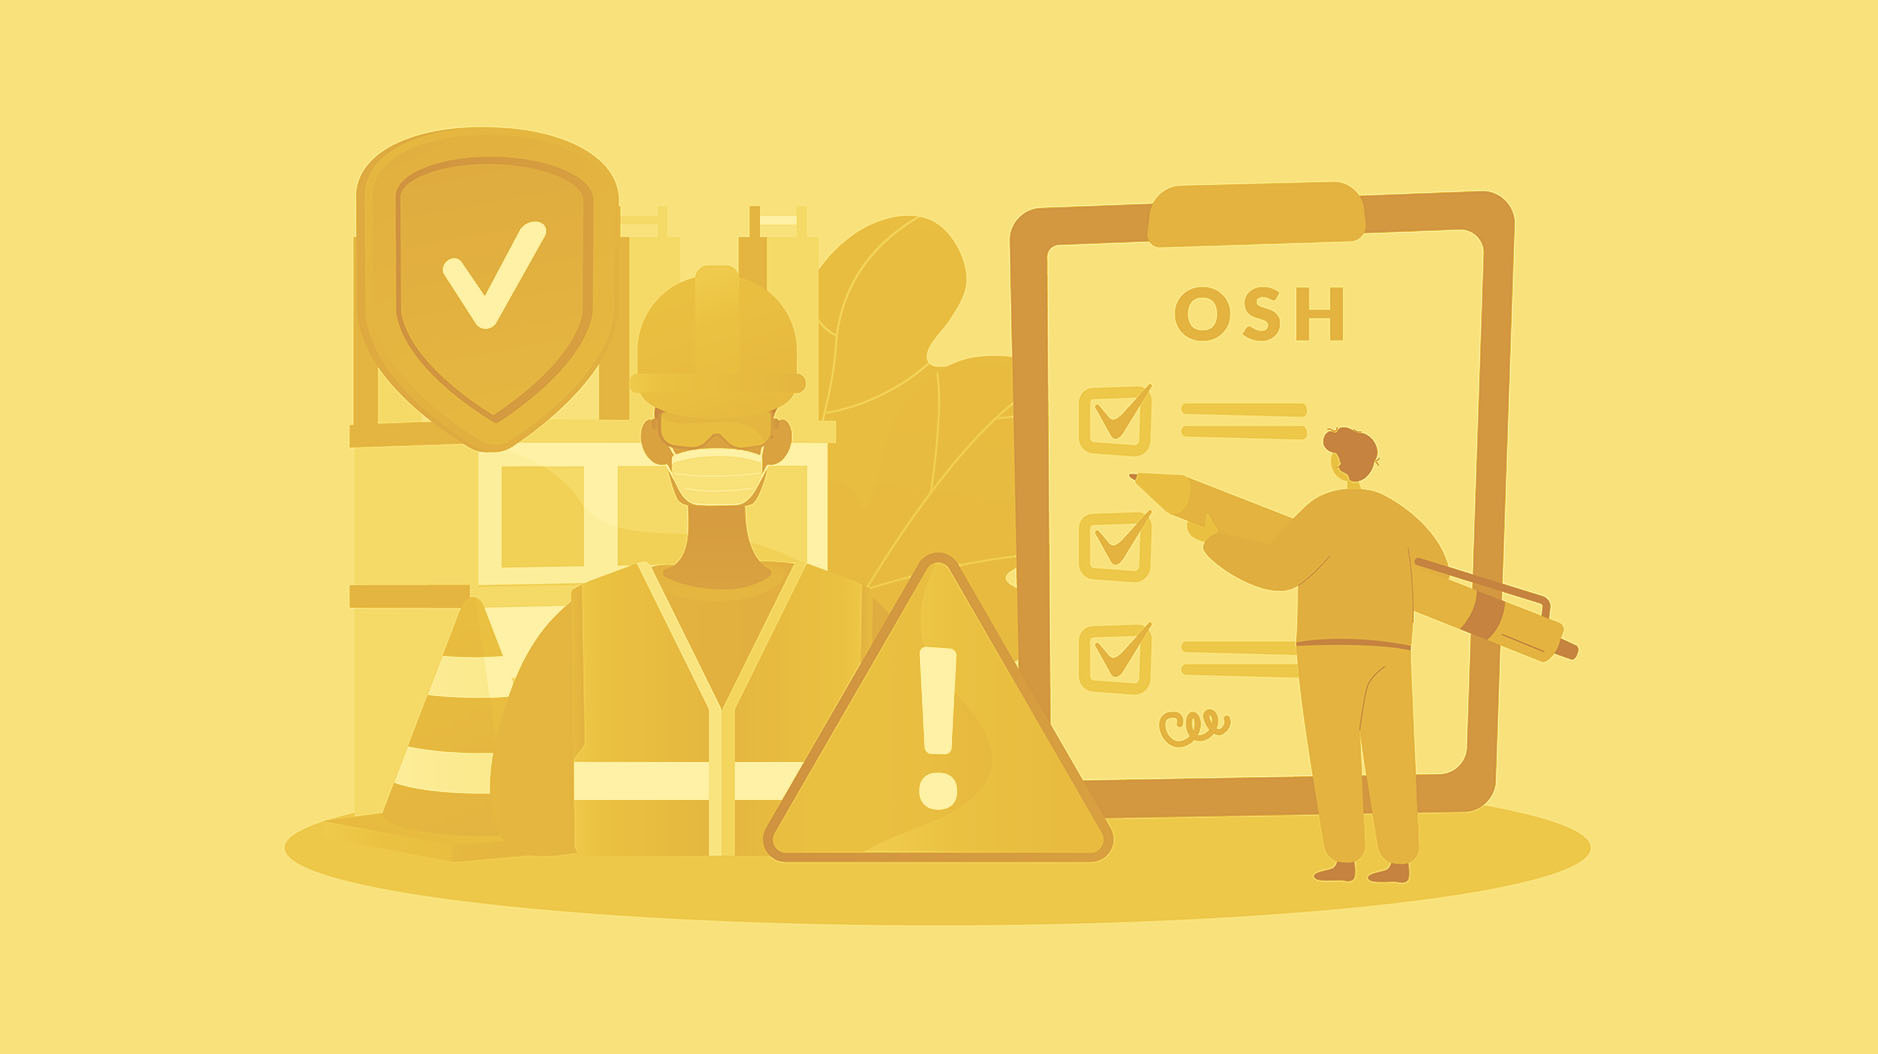 3 processes, 1 solution | Manage occupational safety and health documents better